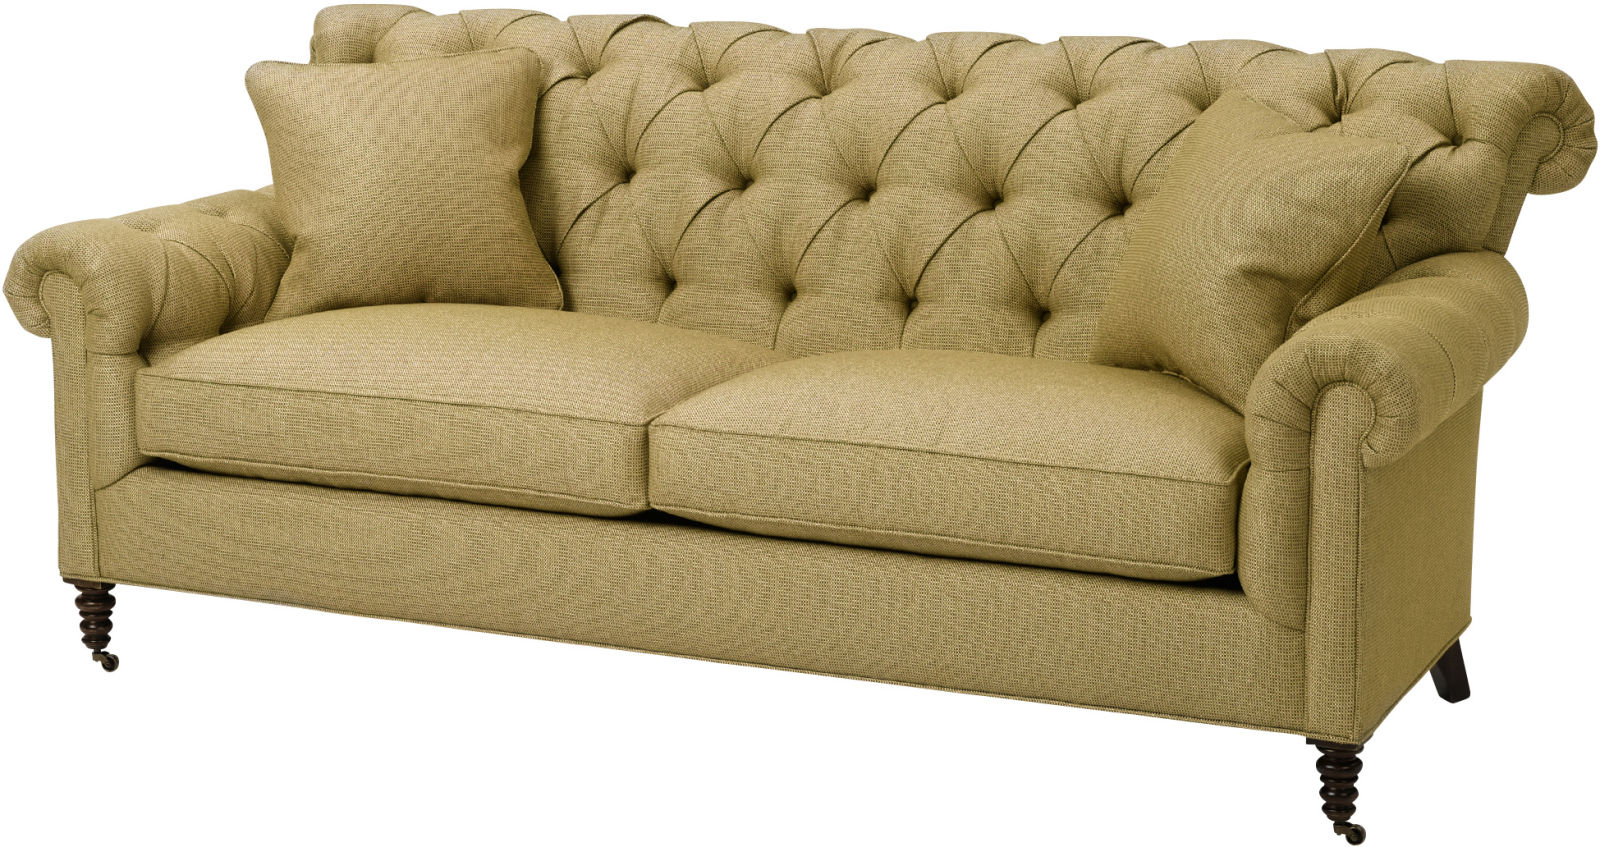 Wesley Hall Furniture   Hickory, NC   PRODUCT PAGE   1936 84 SOFA ?